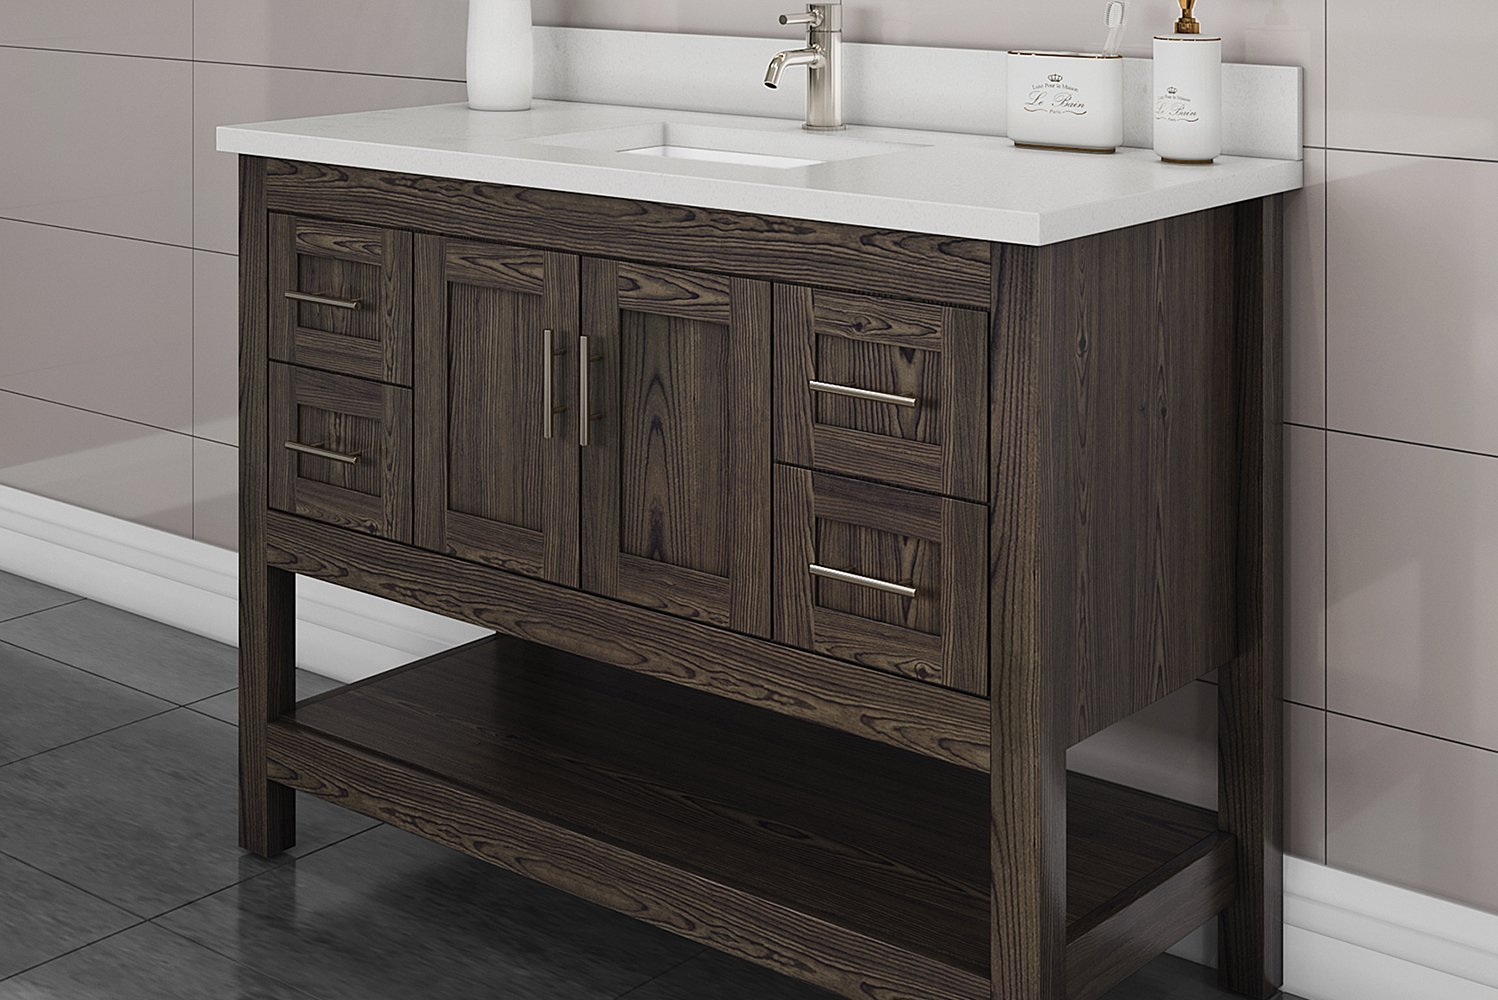 Strasser Woodenworks introduced Dusky Oak, a rustic new finish for their handcrafted solid wood bathroom vanities.